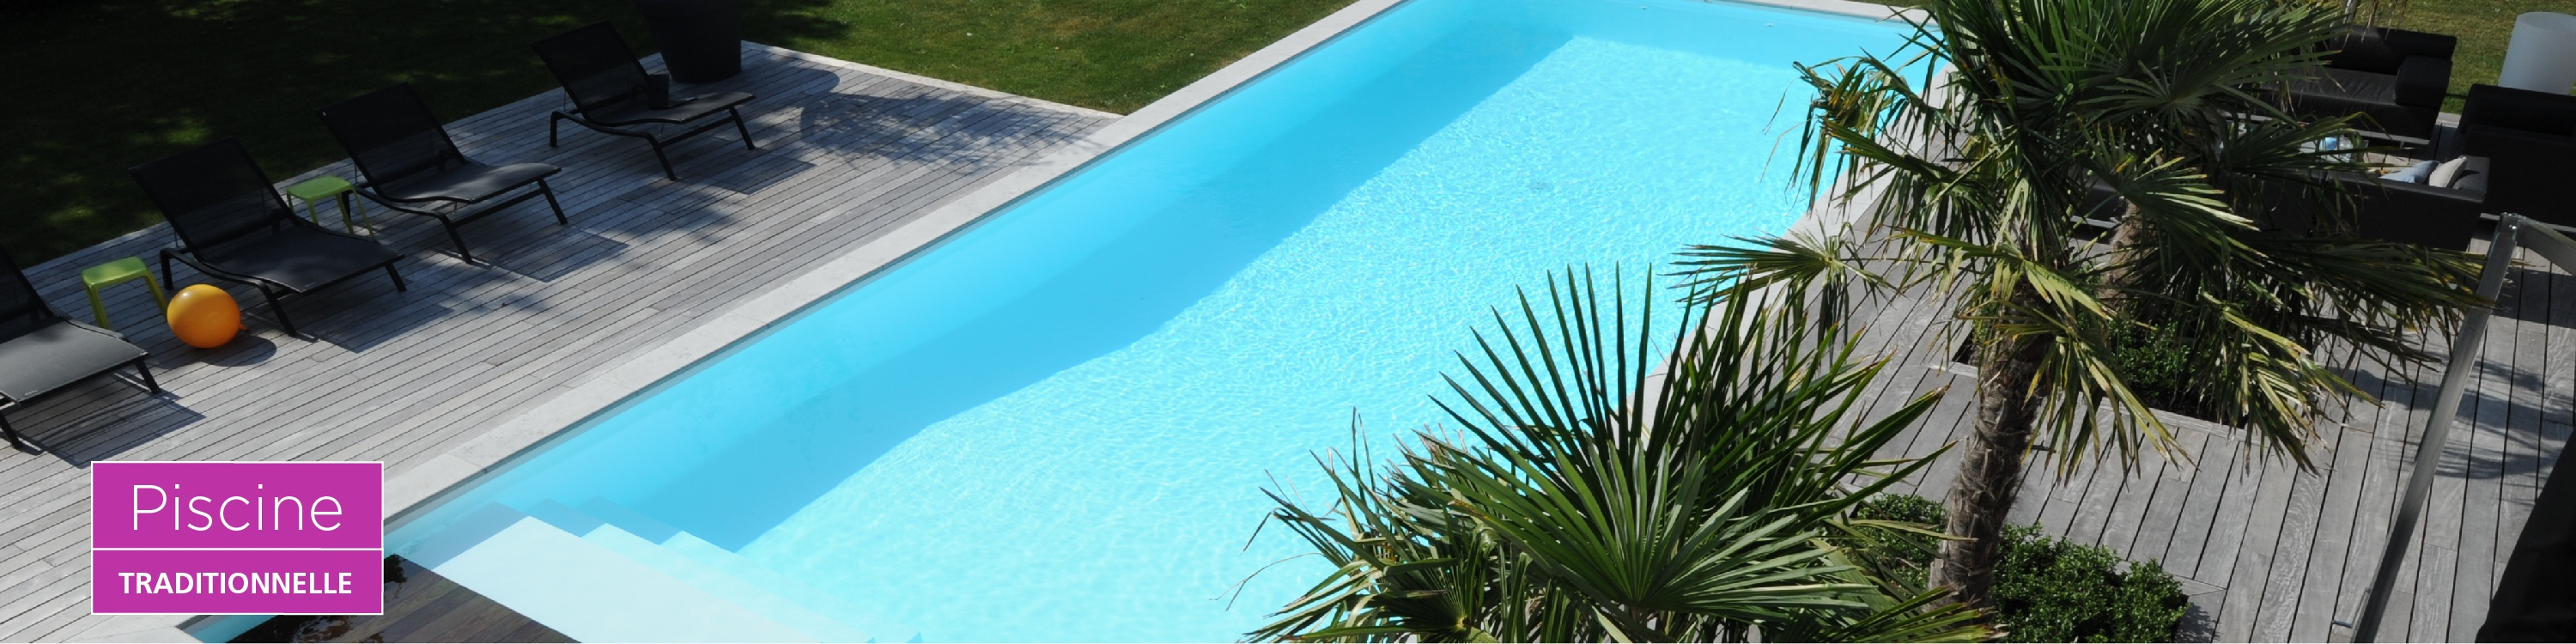 EVERBLUE_Piscine traditionnelle